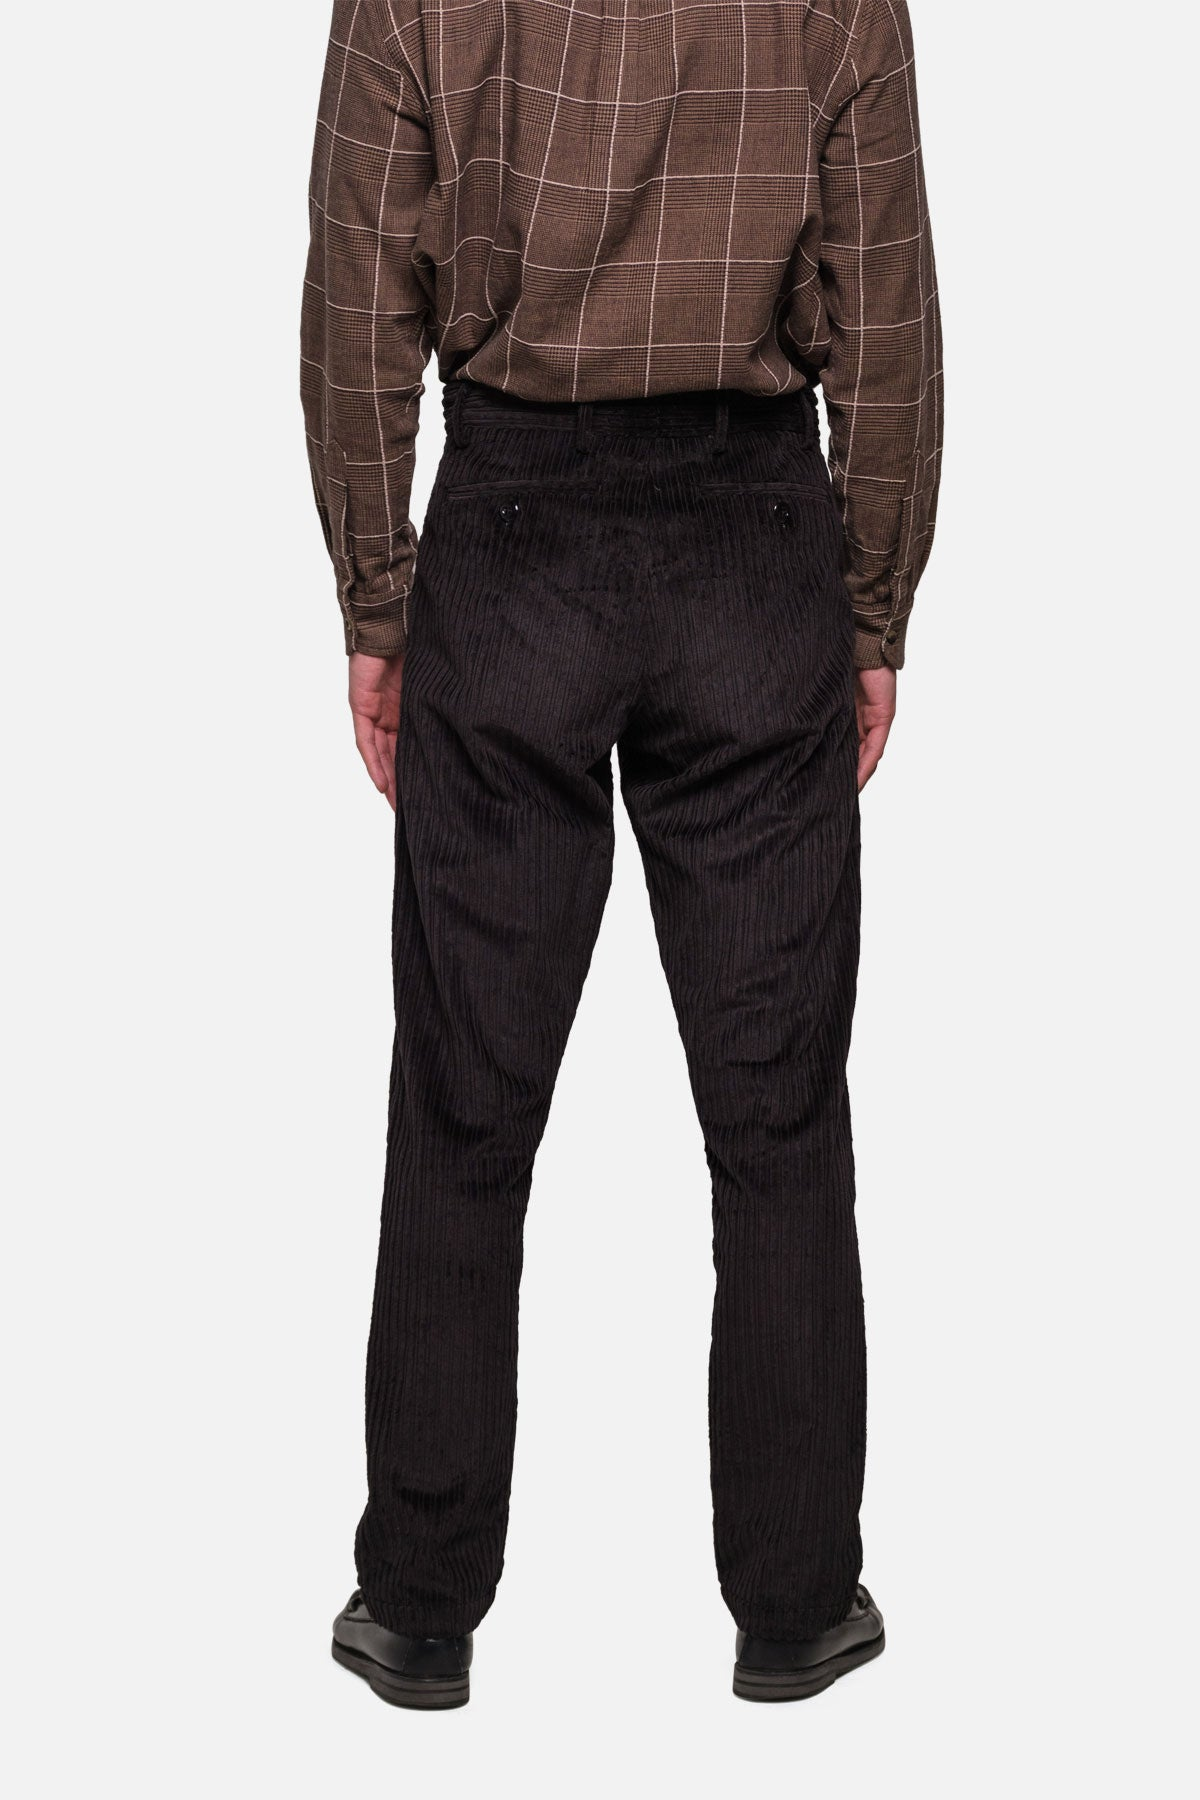 BRIGGS TROUSER IN BLACK Hi-Lo CORD - Fortune Goods